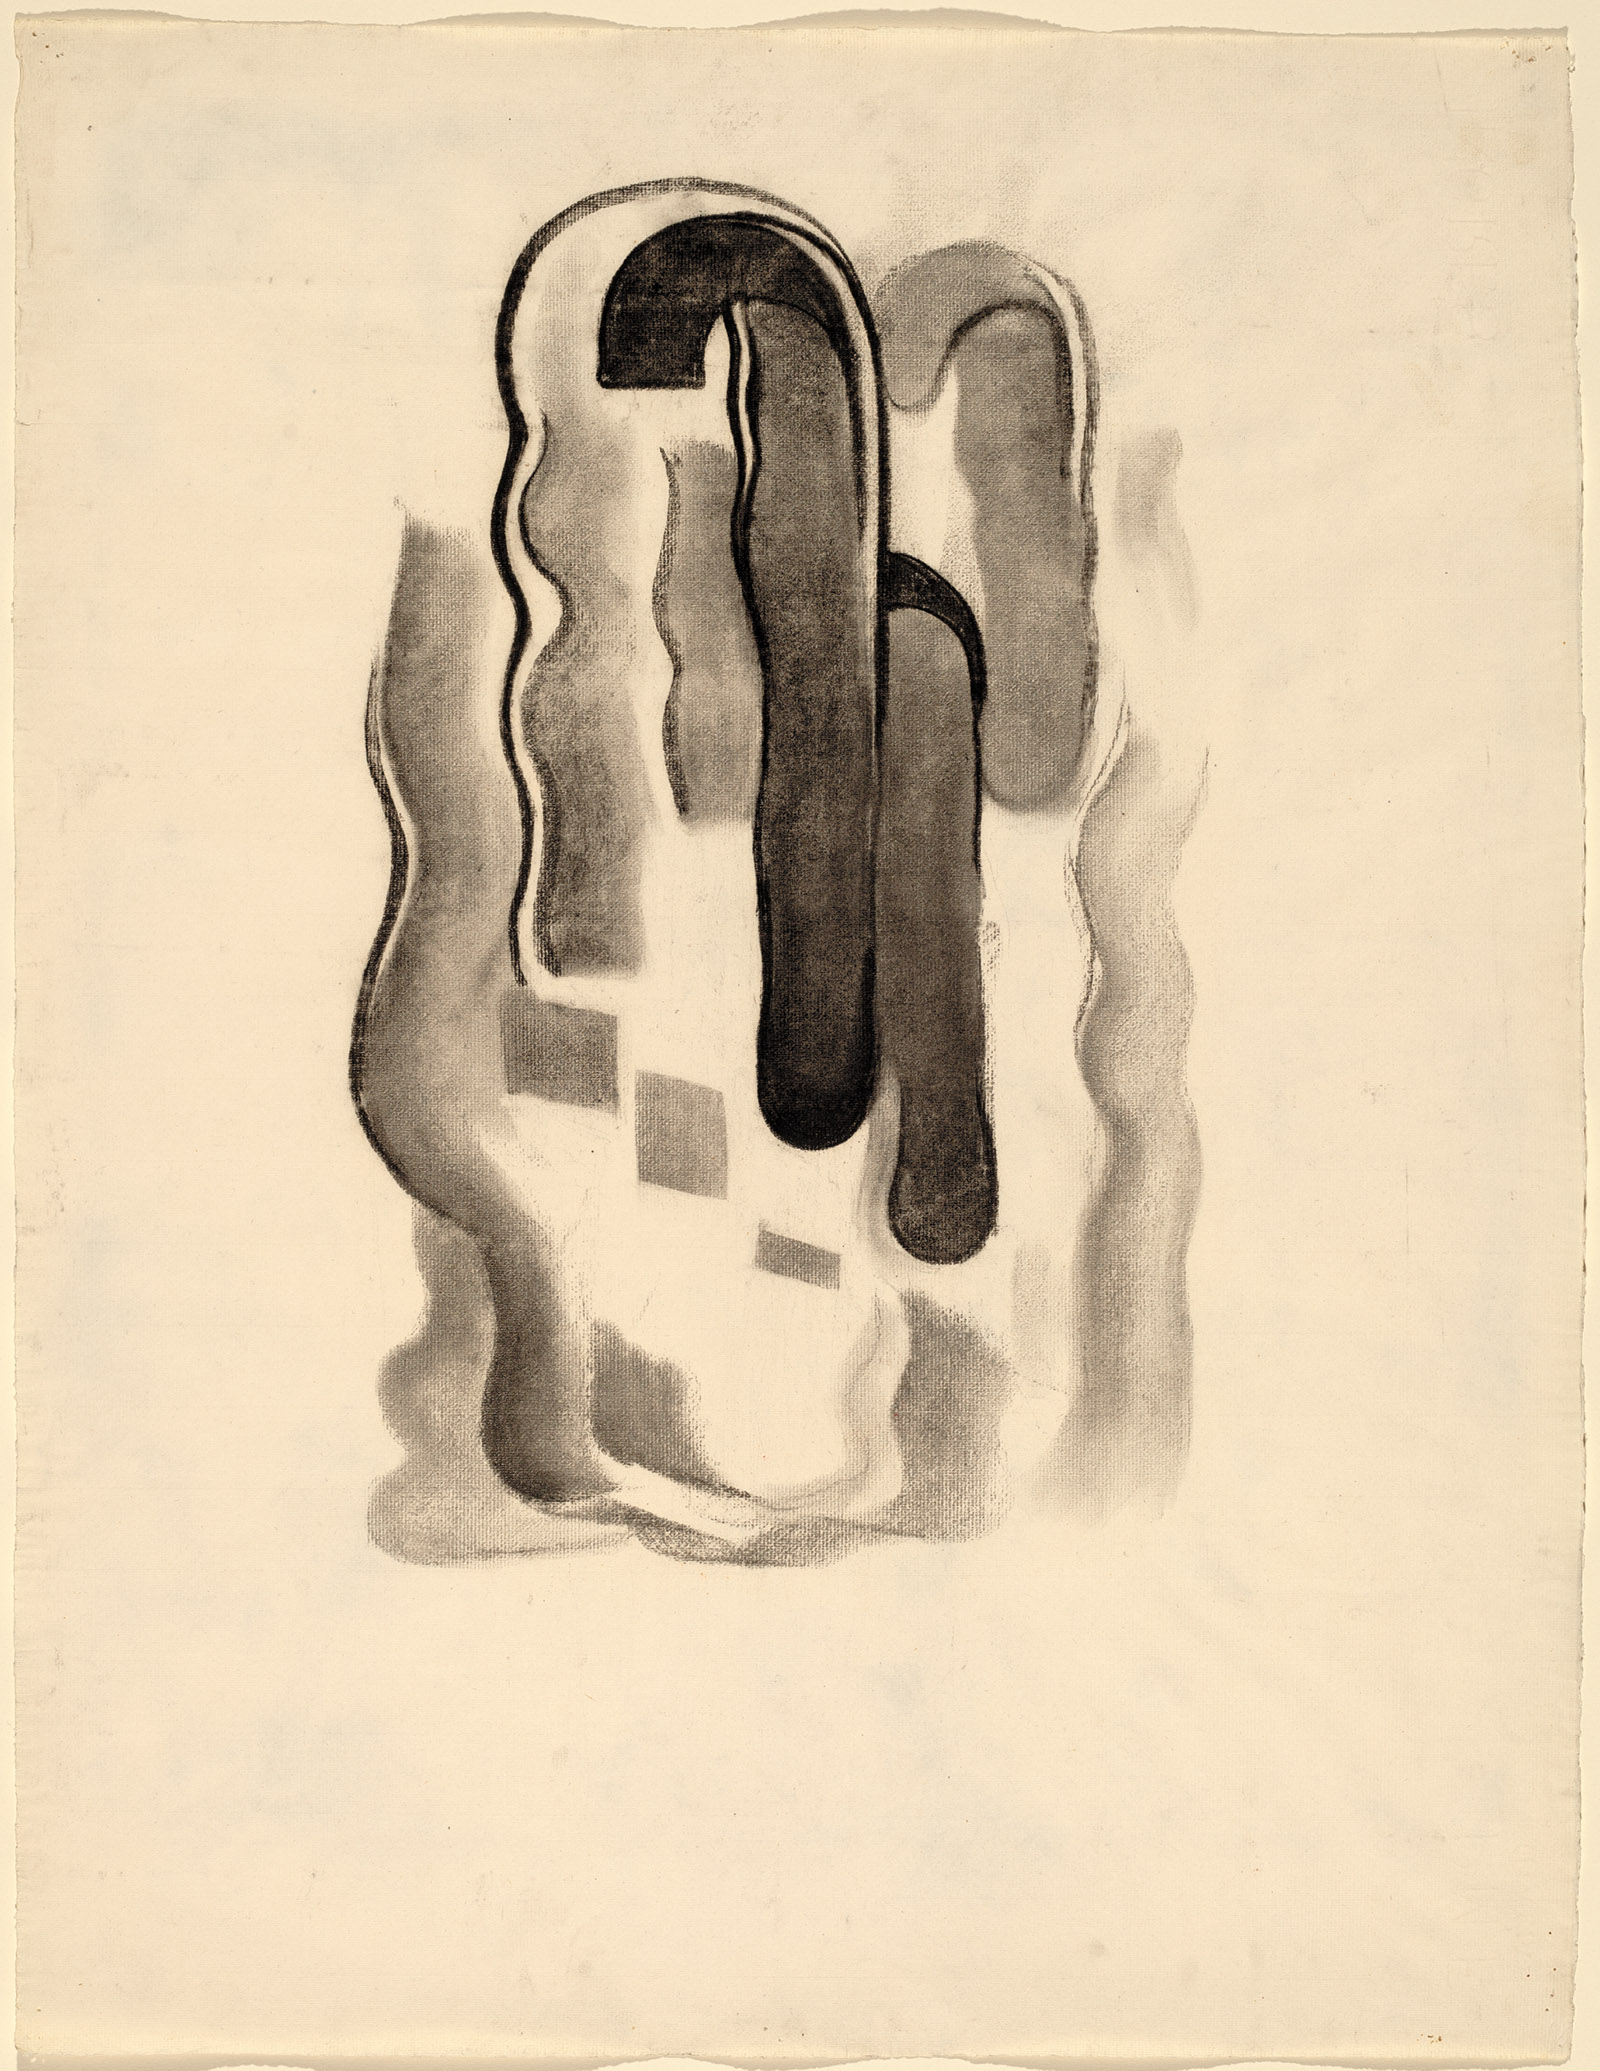 No. 7 Special, 1915, a painting by Georgia O'Keeffe